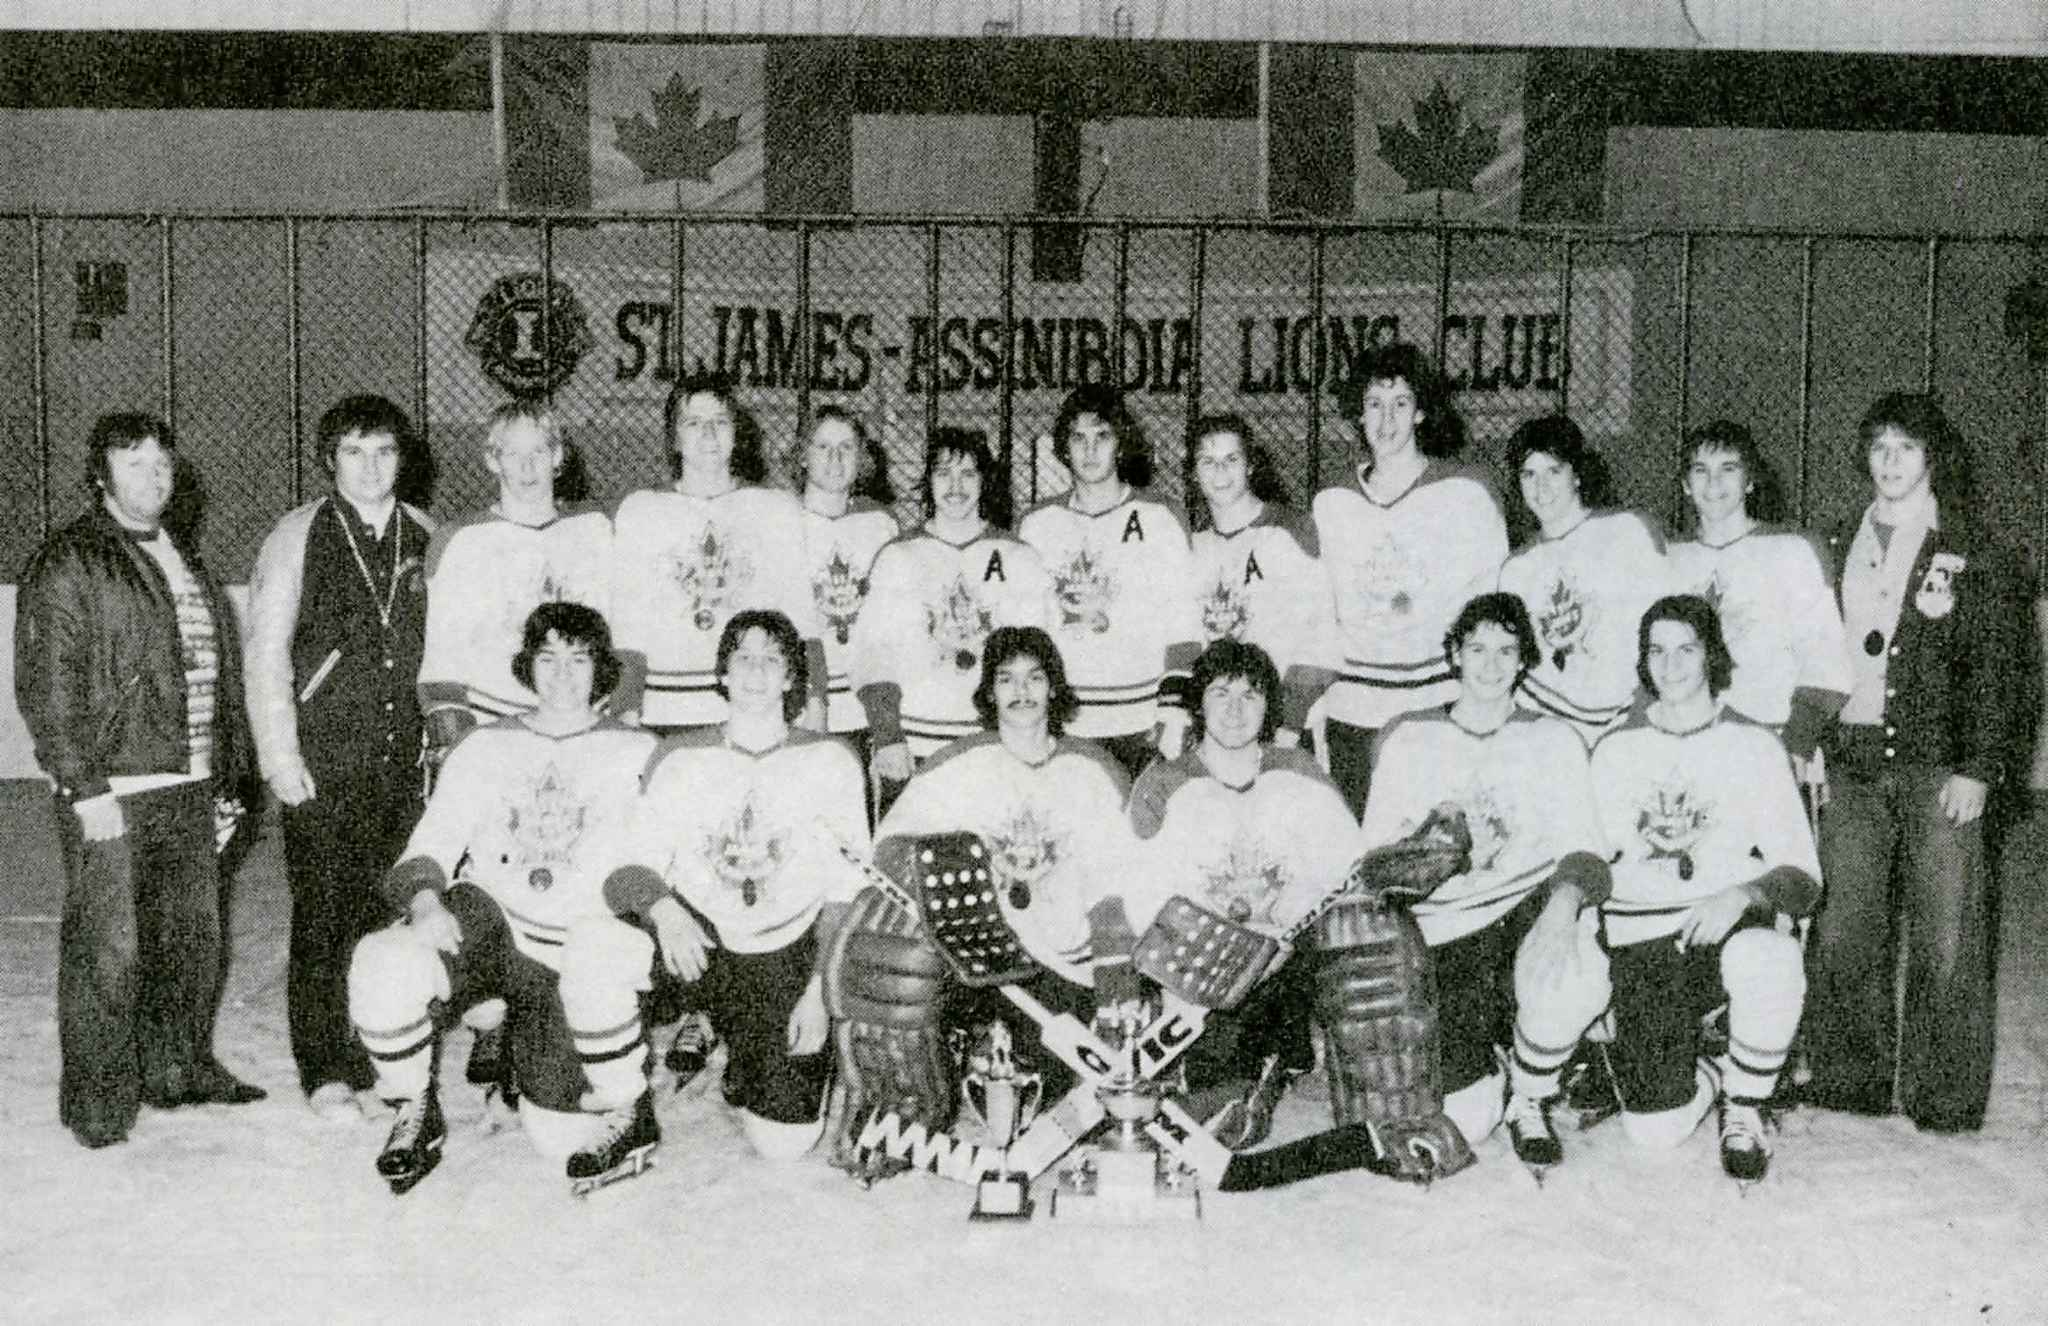 The first real coaching job for James (second from left) was with the St. James Canadians bantam team, which included Eakin (fifth from the right, back row).